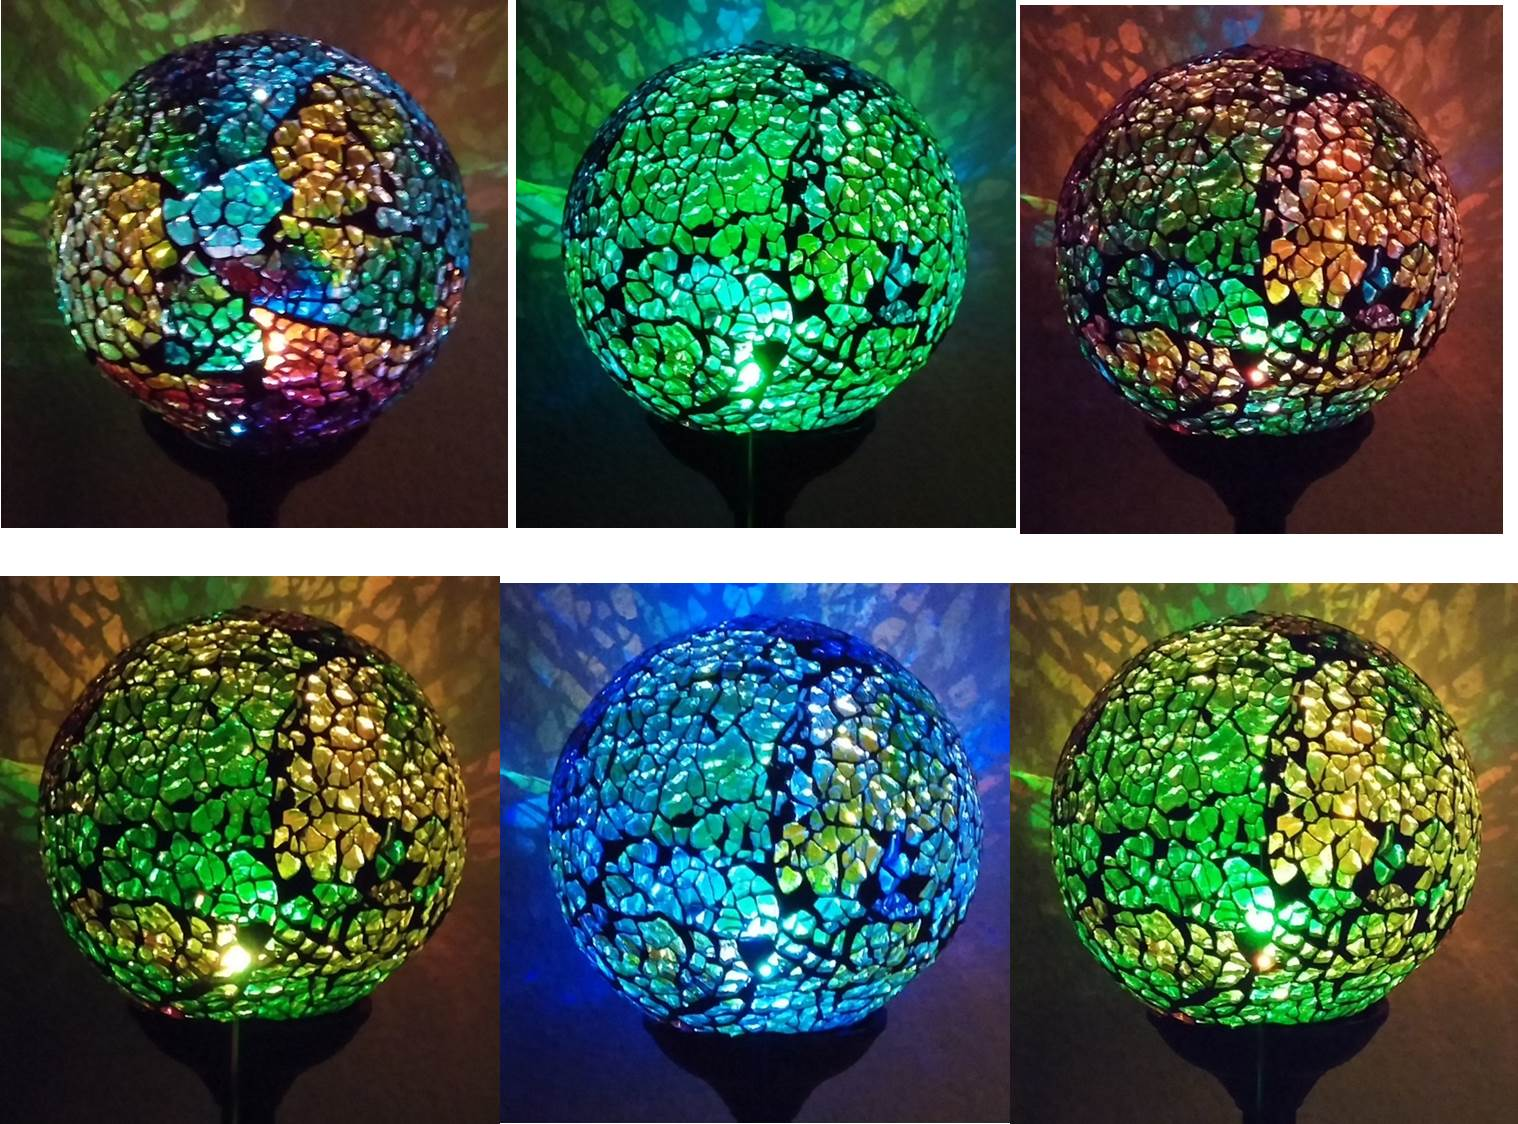 Solar Garden Yard Decor Mosaic Crackle Glass Ball Light Landscape Lawn Pathway Color Change LED Lamp